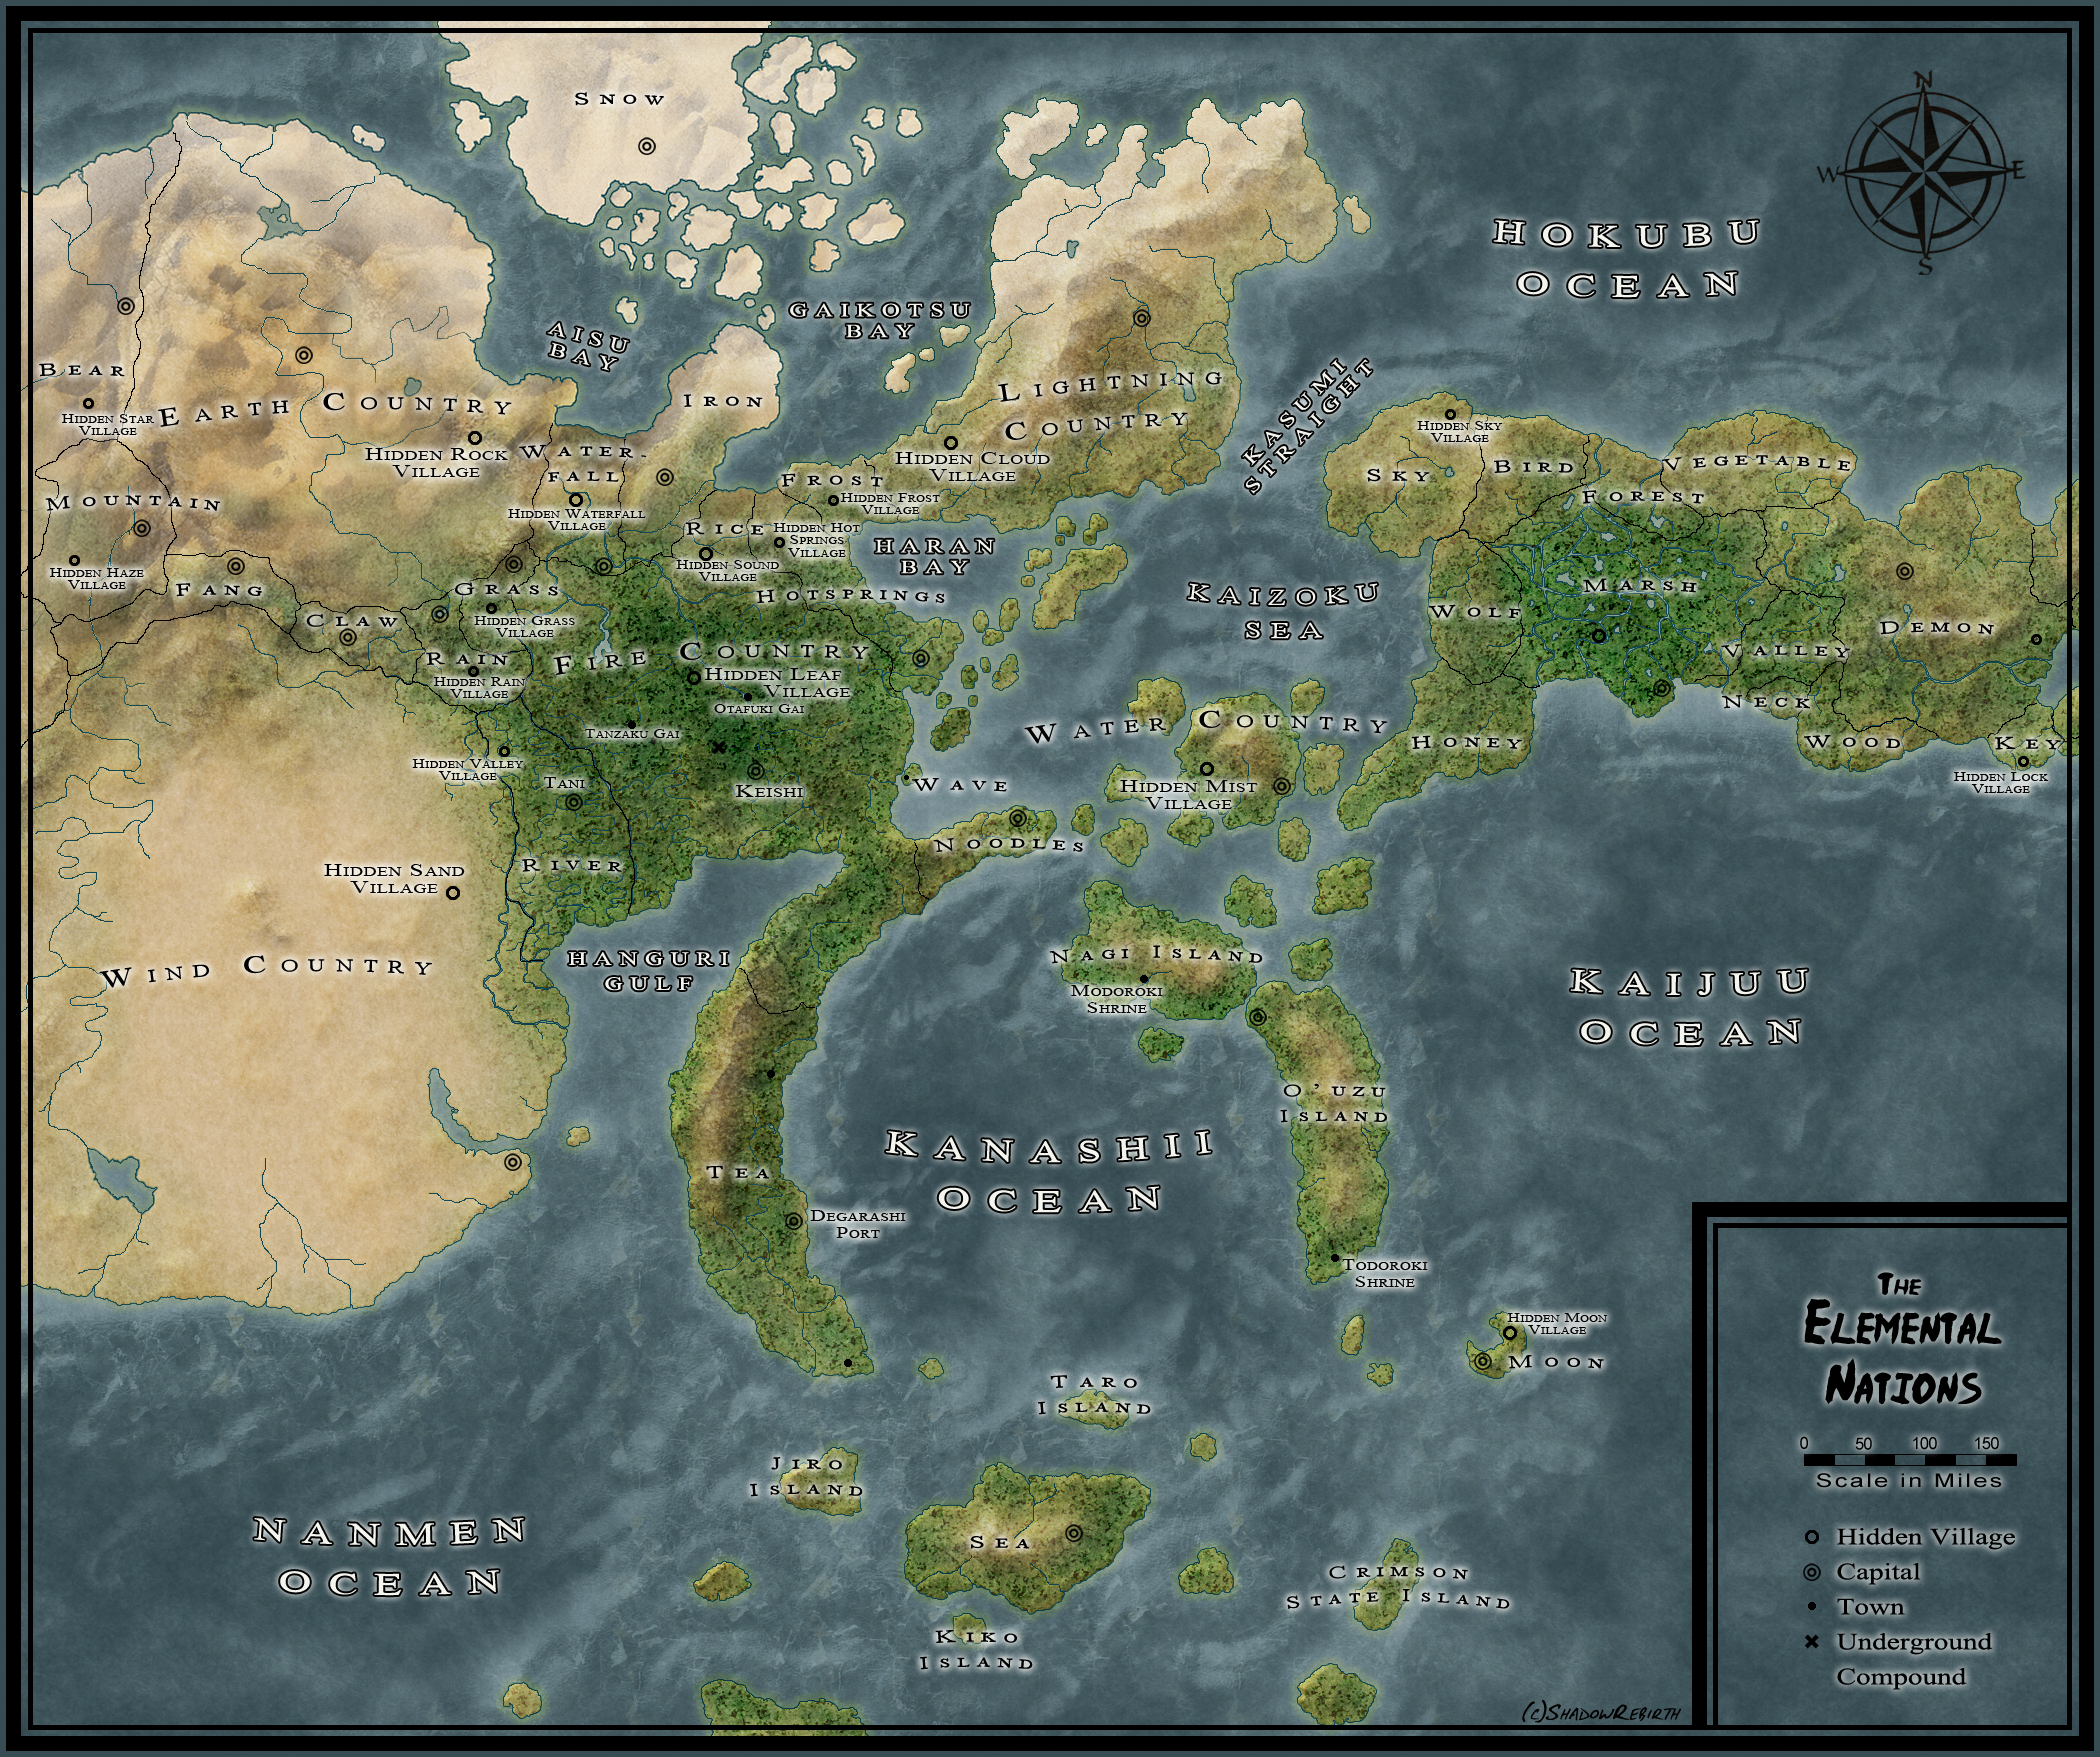 Elemental nations geographical map by xshadowrebirthx on deviantart elemental nations geographical map by xshadowrebirthx elemental nations geographical map by xshadowrebirthx gumiabroncs Image collections